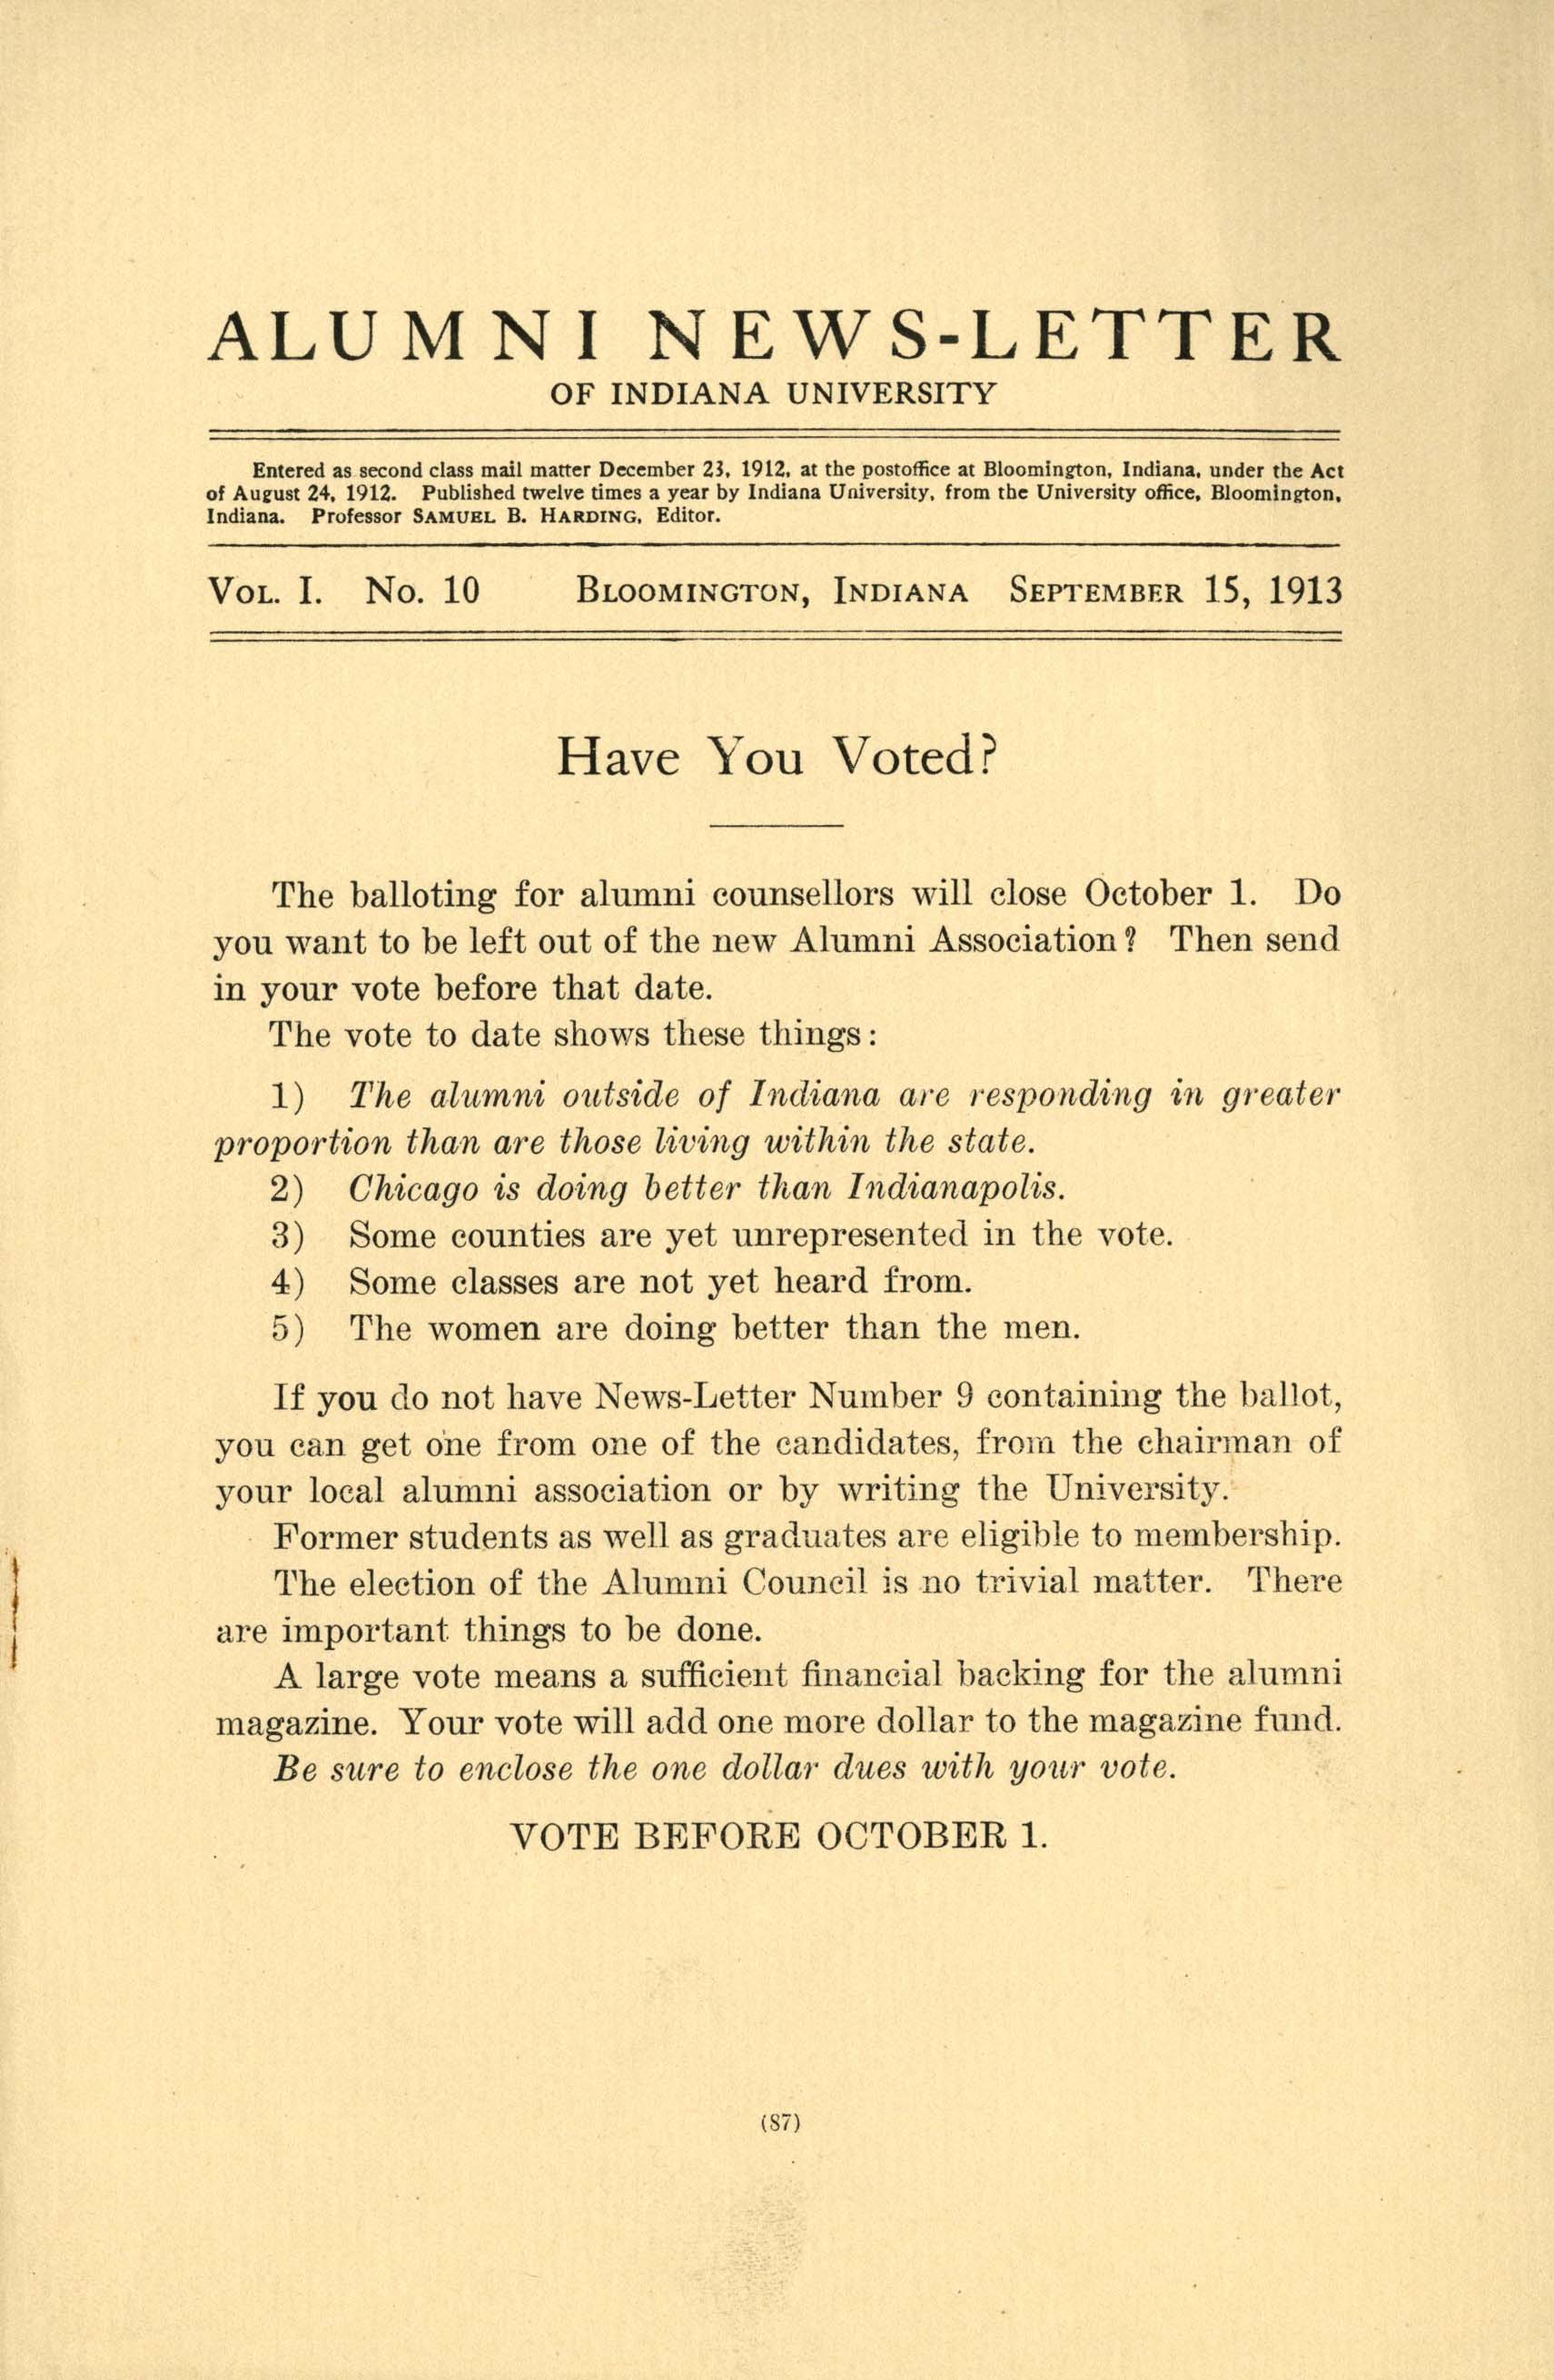 Front cover of the September 1913 Alumni Newsletter of Indiana University featuring the headline 'Have You Voted?'